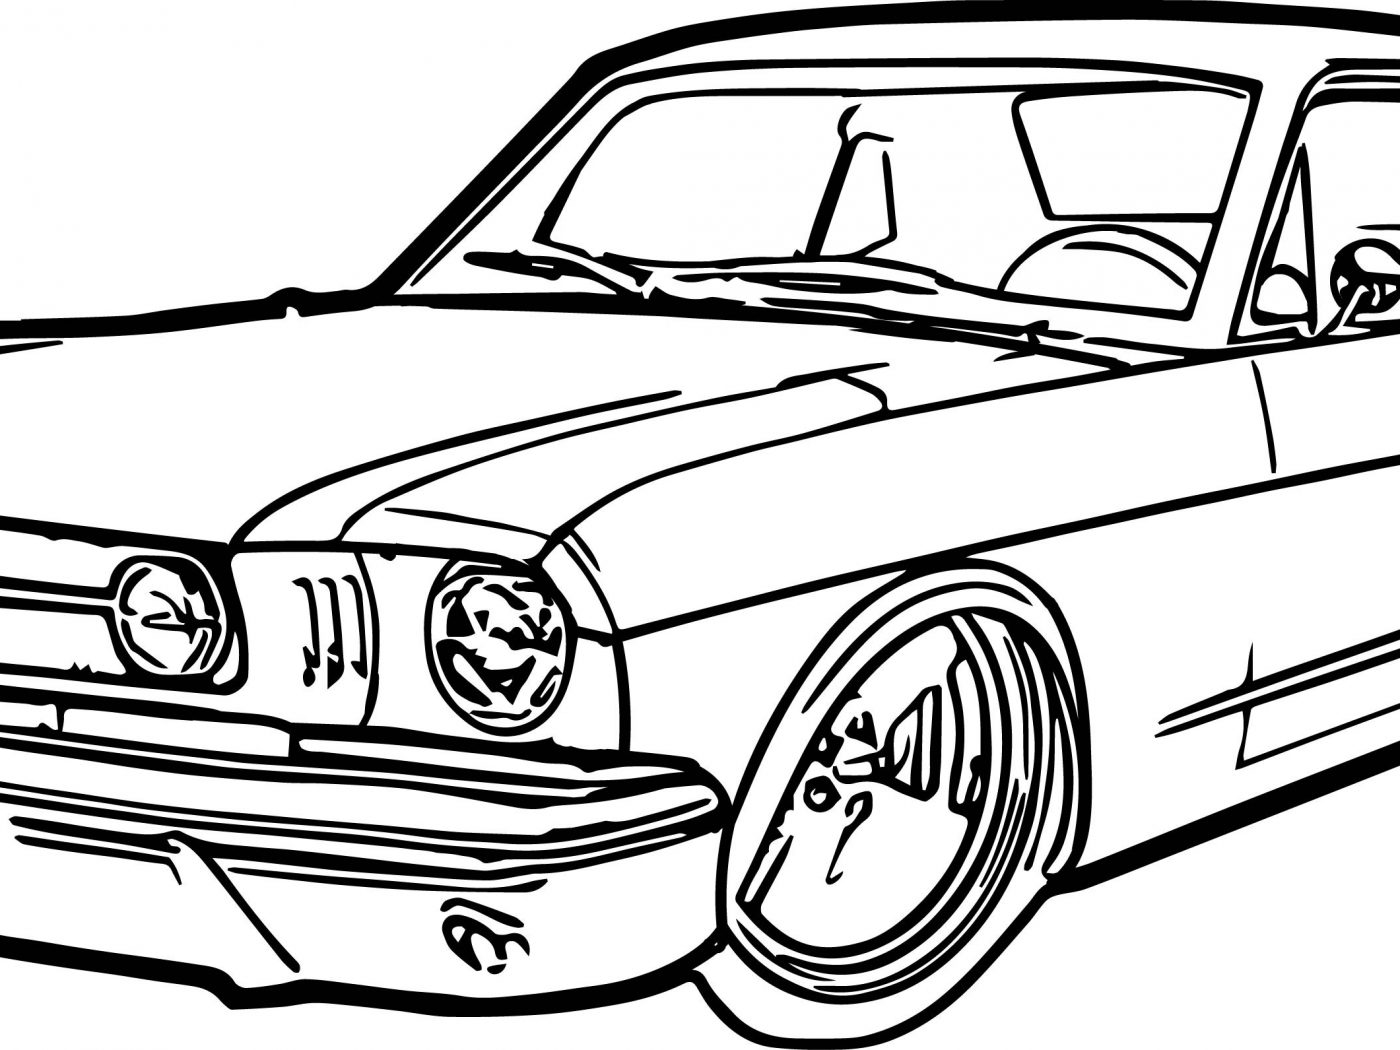 mustang race car coloring pages mustang car coloring pages at getcoloringscom free coloring car mustang race pages